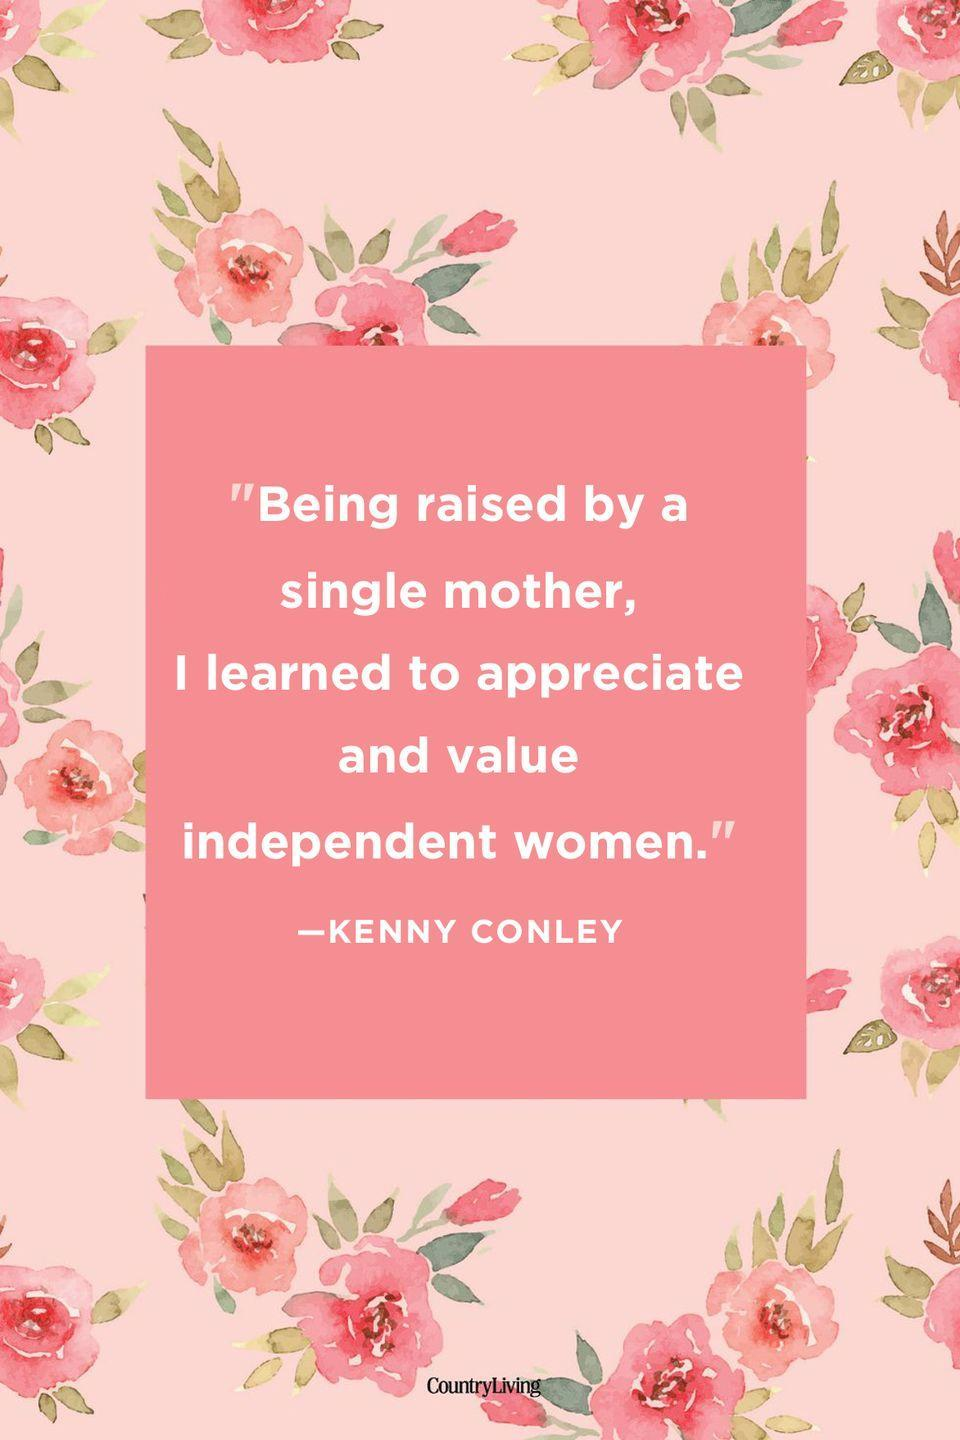 "<p>""Being raised by a single mother, I learned to appreciate and value independent women.""</p>"